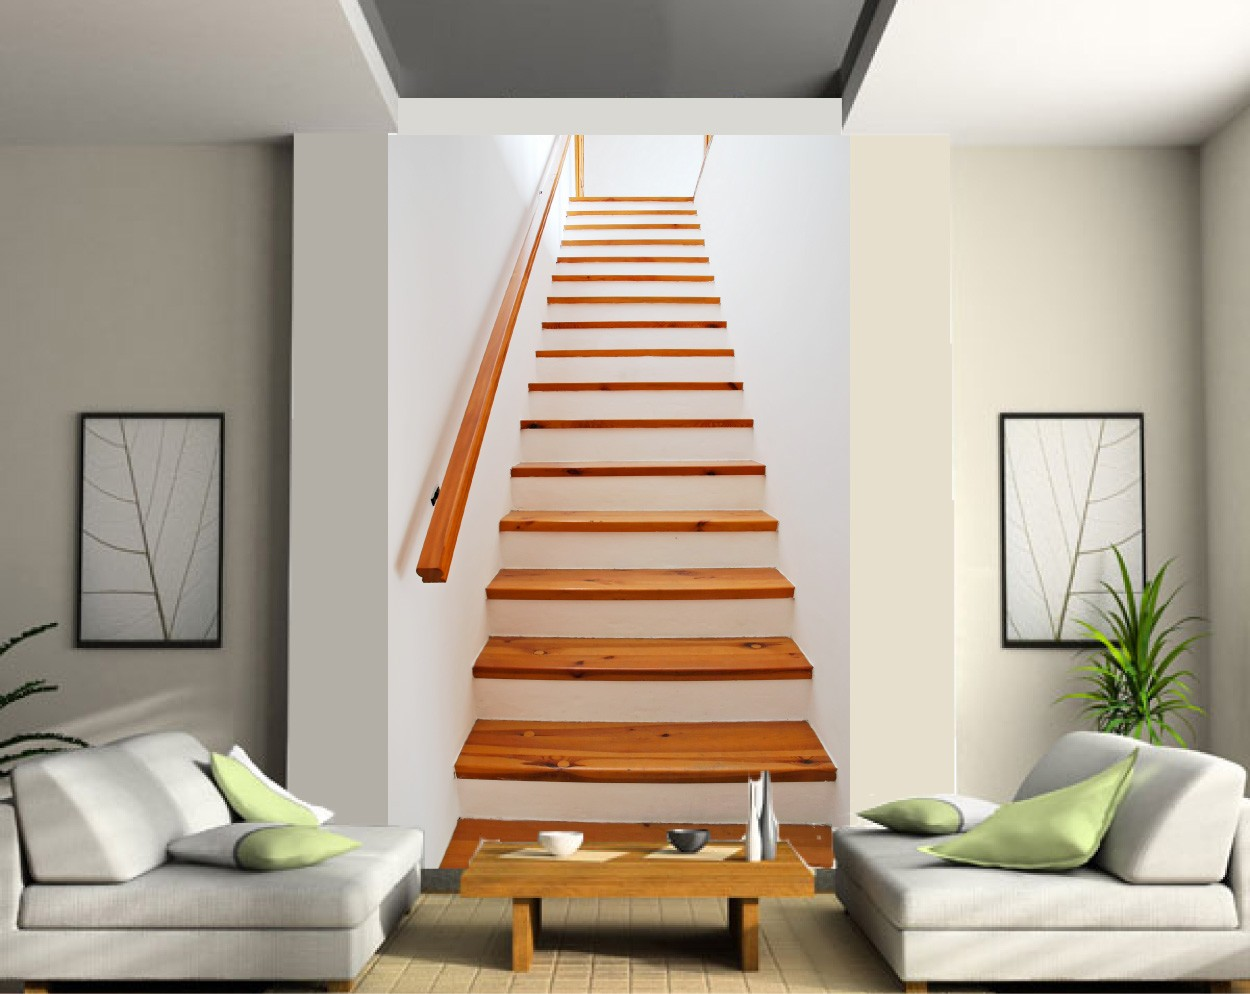 Poster mural trompe l oeil fashion designs for Deco montee d escalier